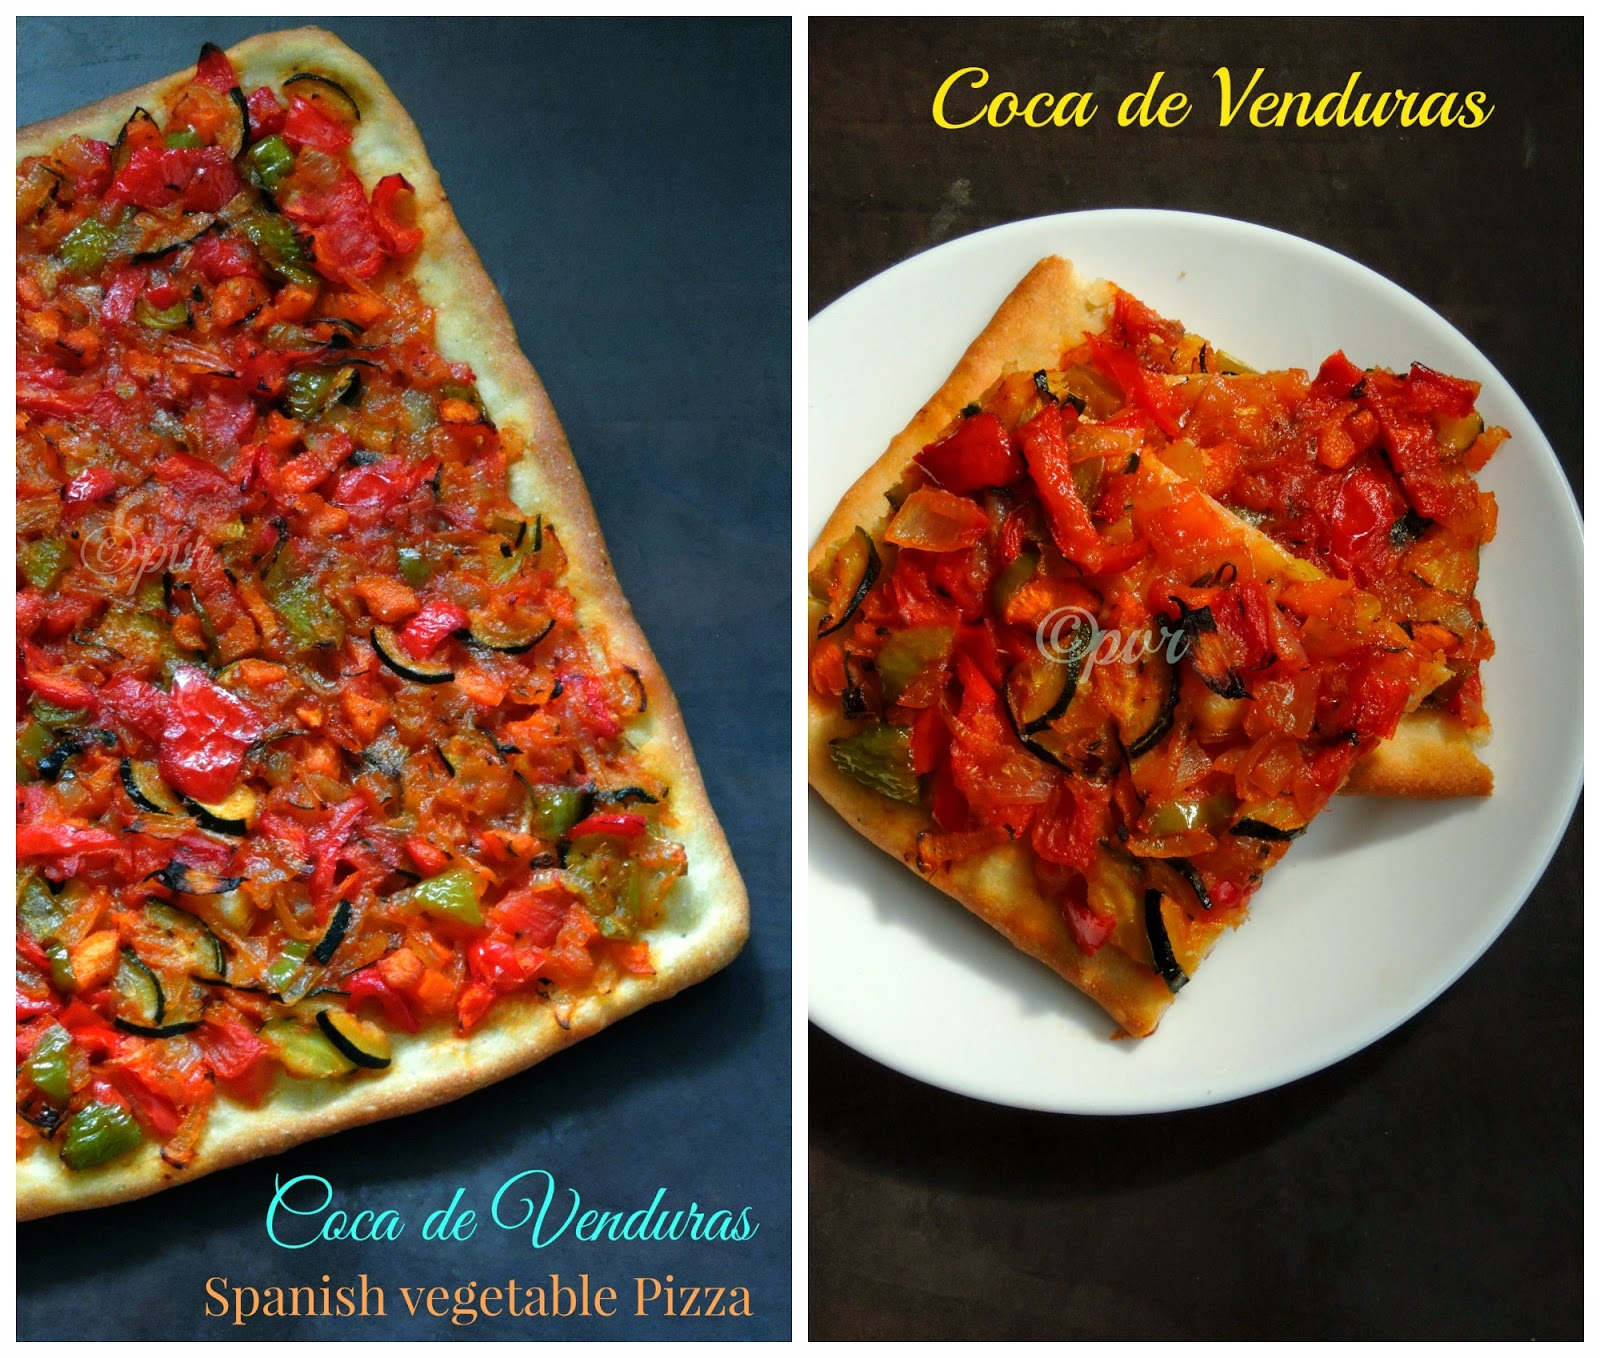 Coca de Venduras, vegan catalan vegetable pizza